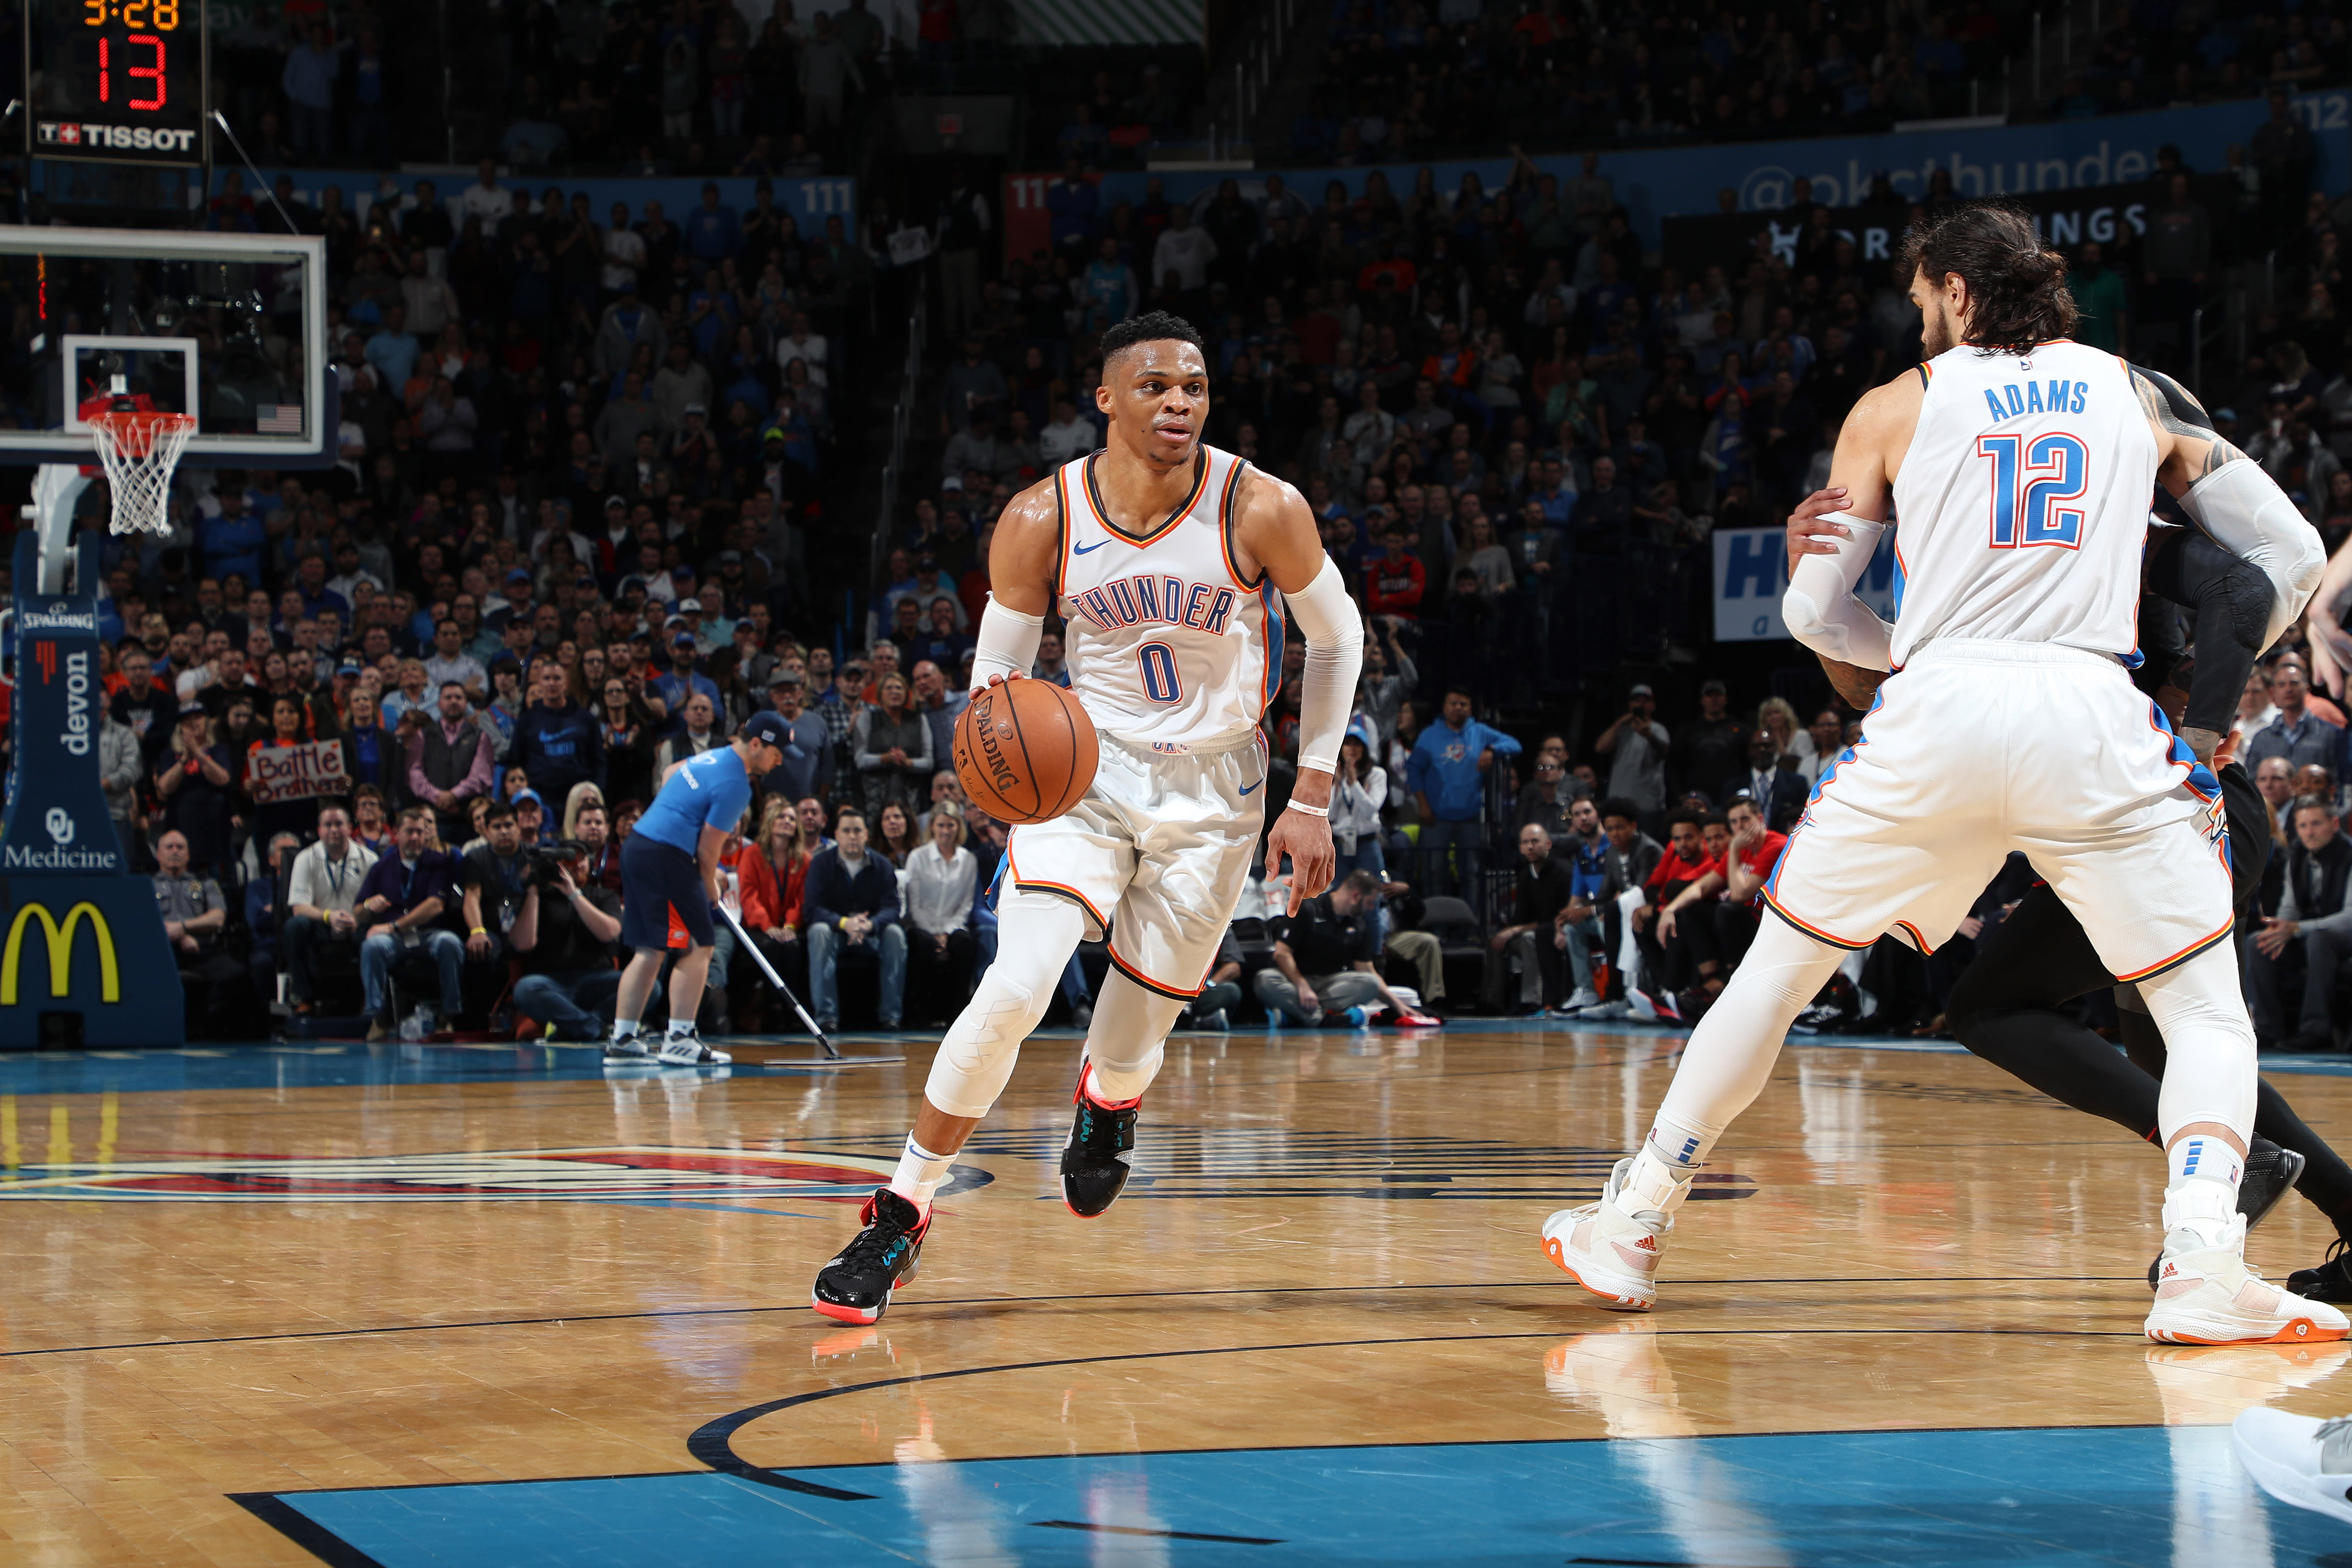 online store 5ebb3 e97c3 It was also a strong night for former teammates of Westbrook, and a  somewhat tough night for Chamberlain, as James Harden continued his  30-point streak.